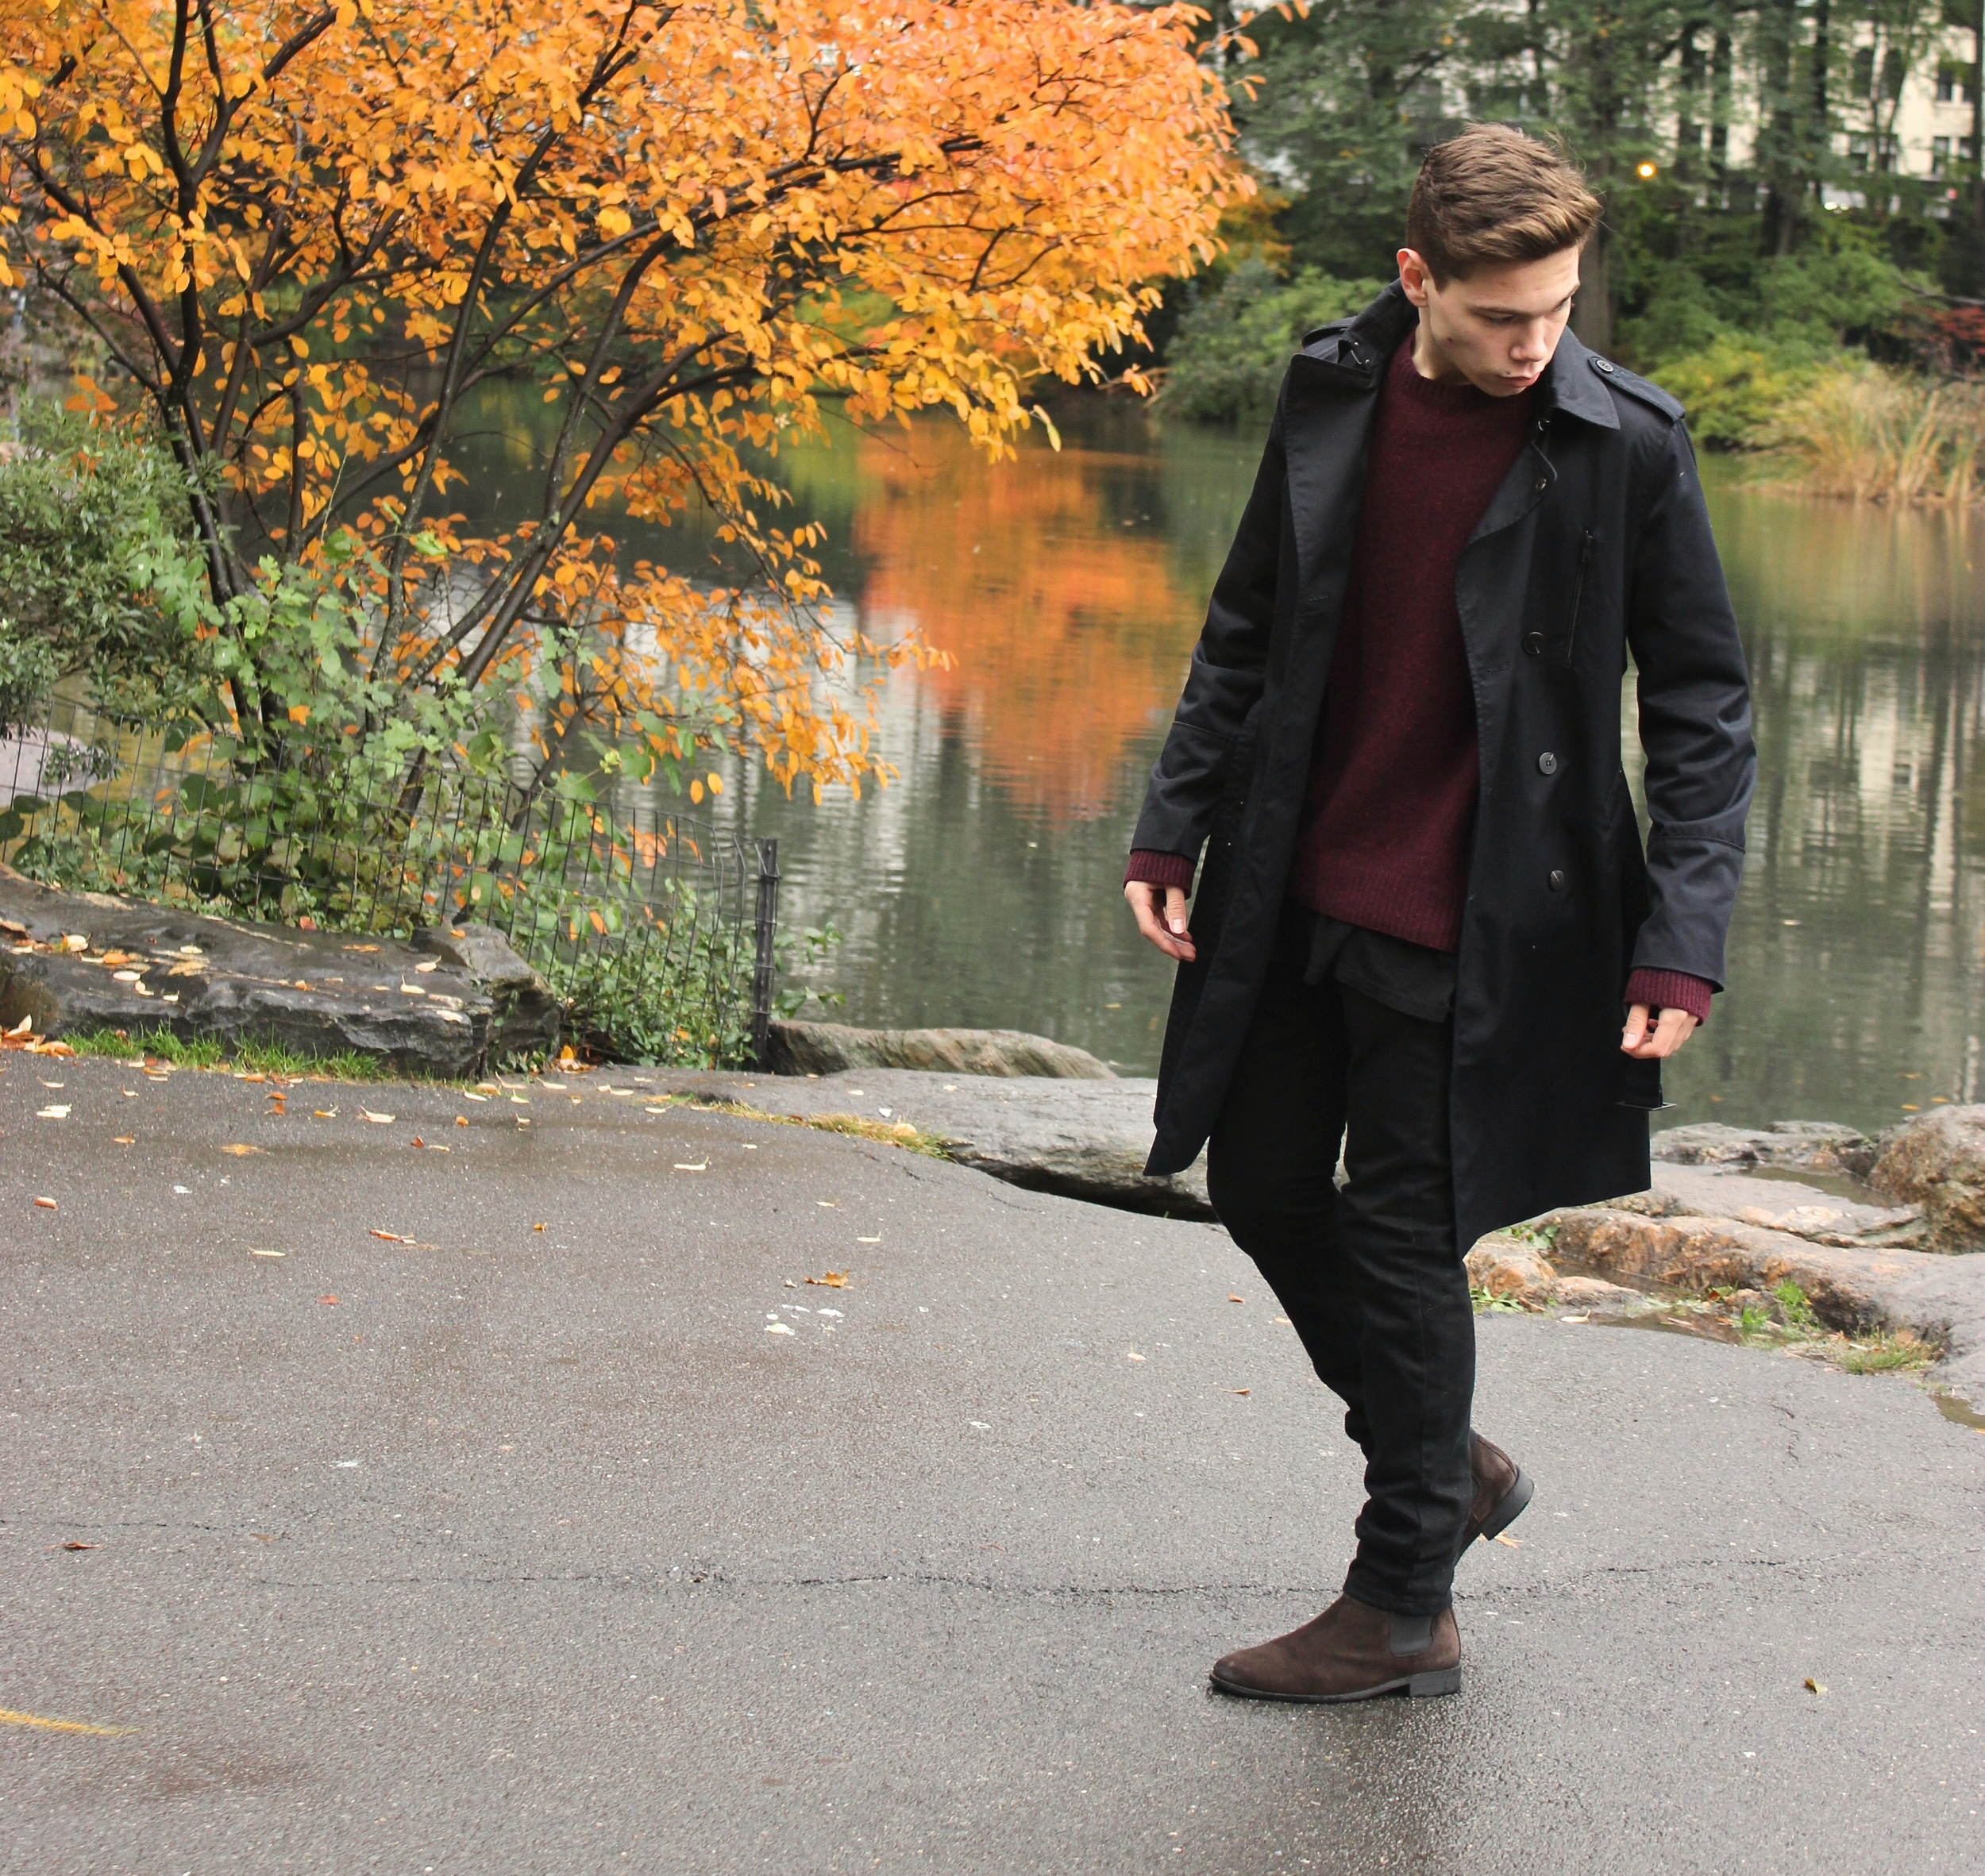 H&M Jacket and boots, Margiela sweater, topman jeans.